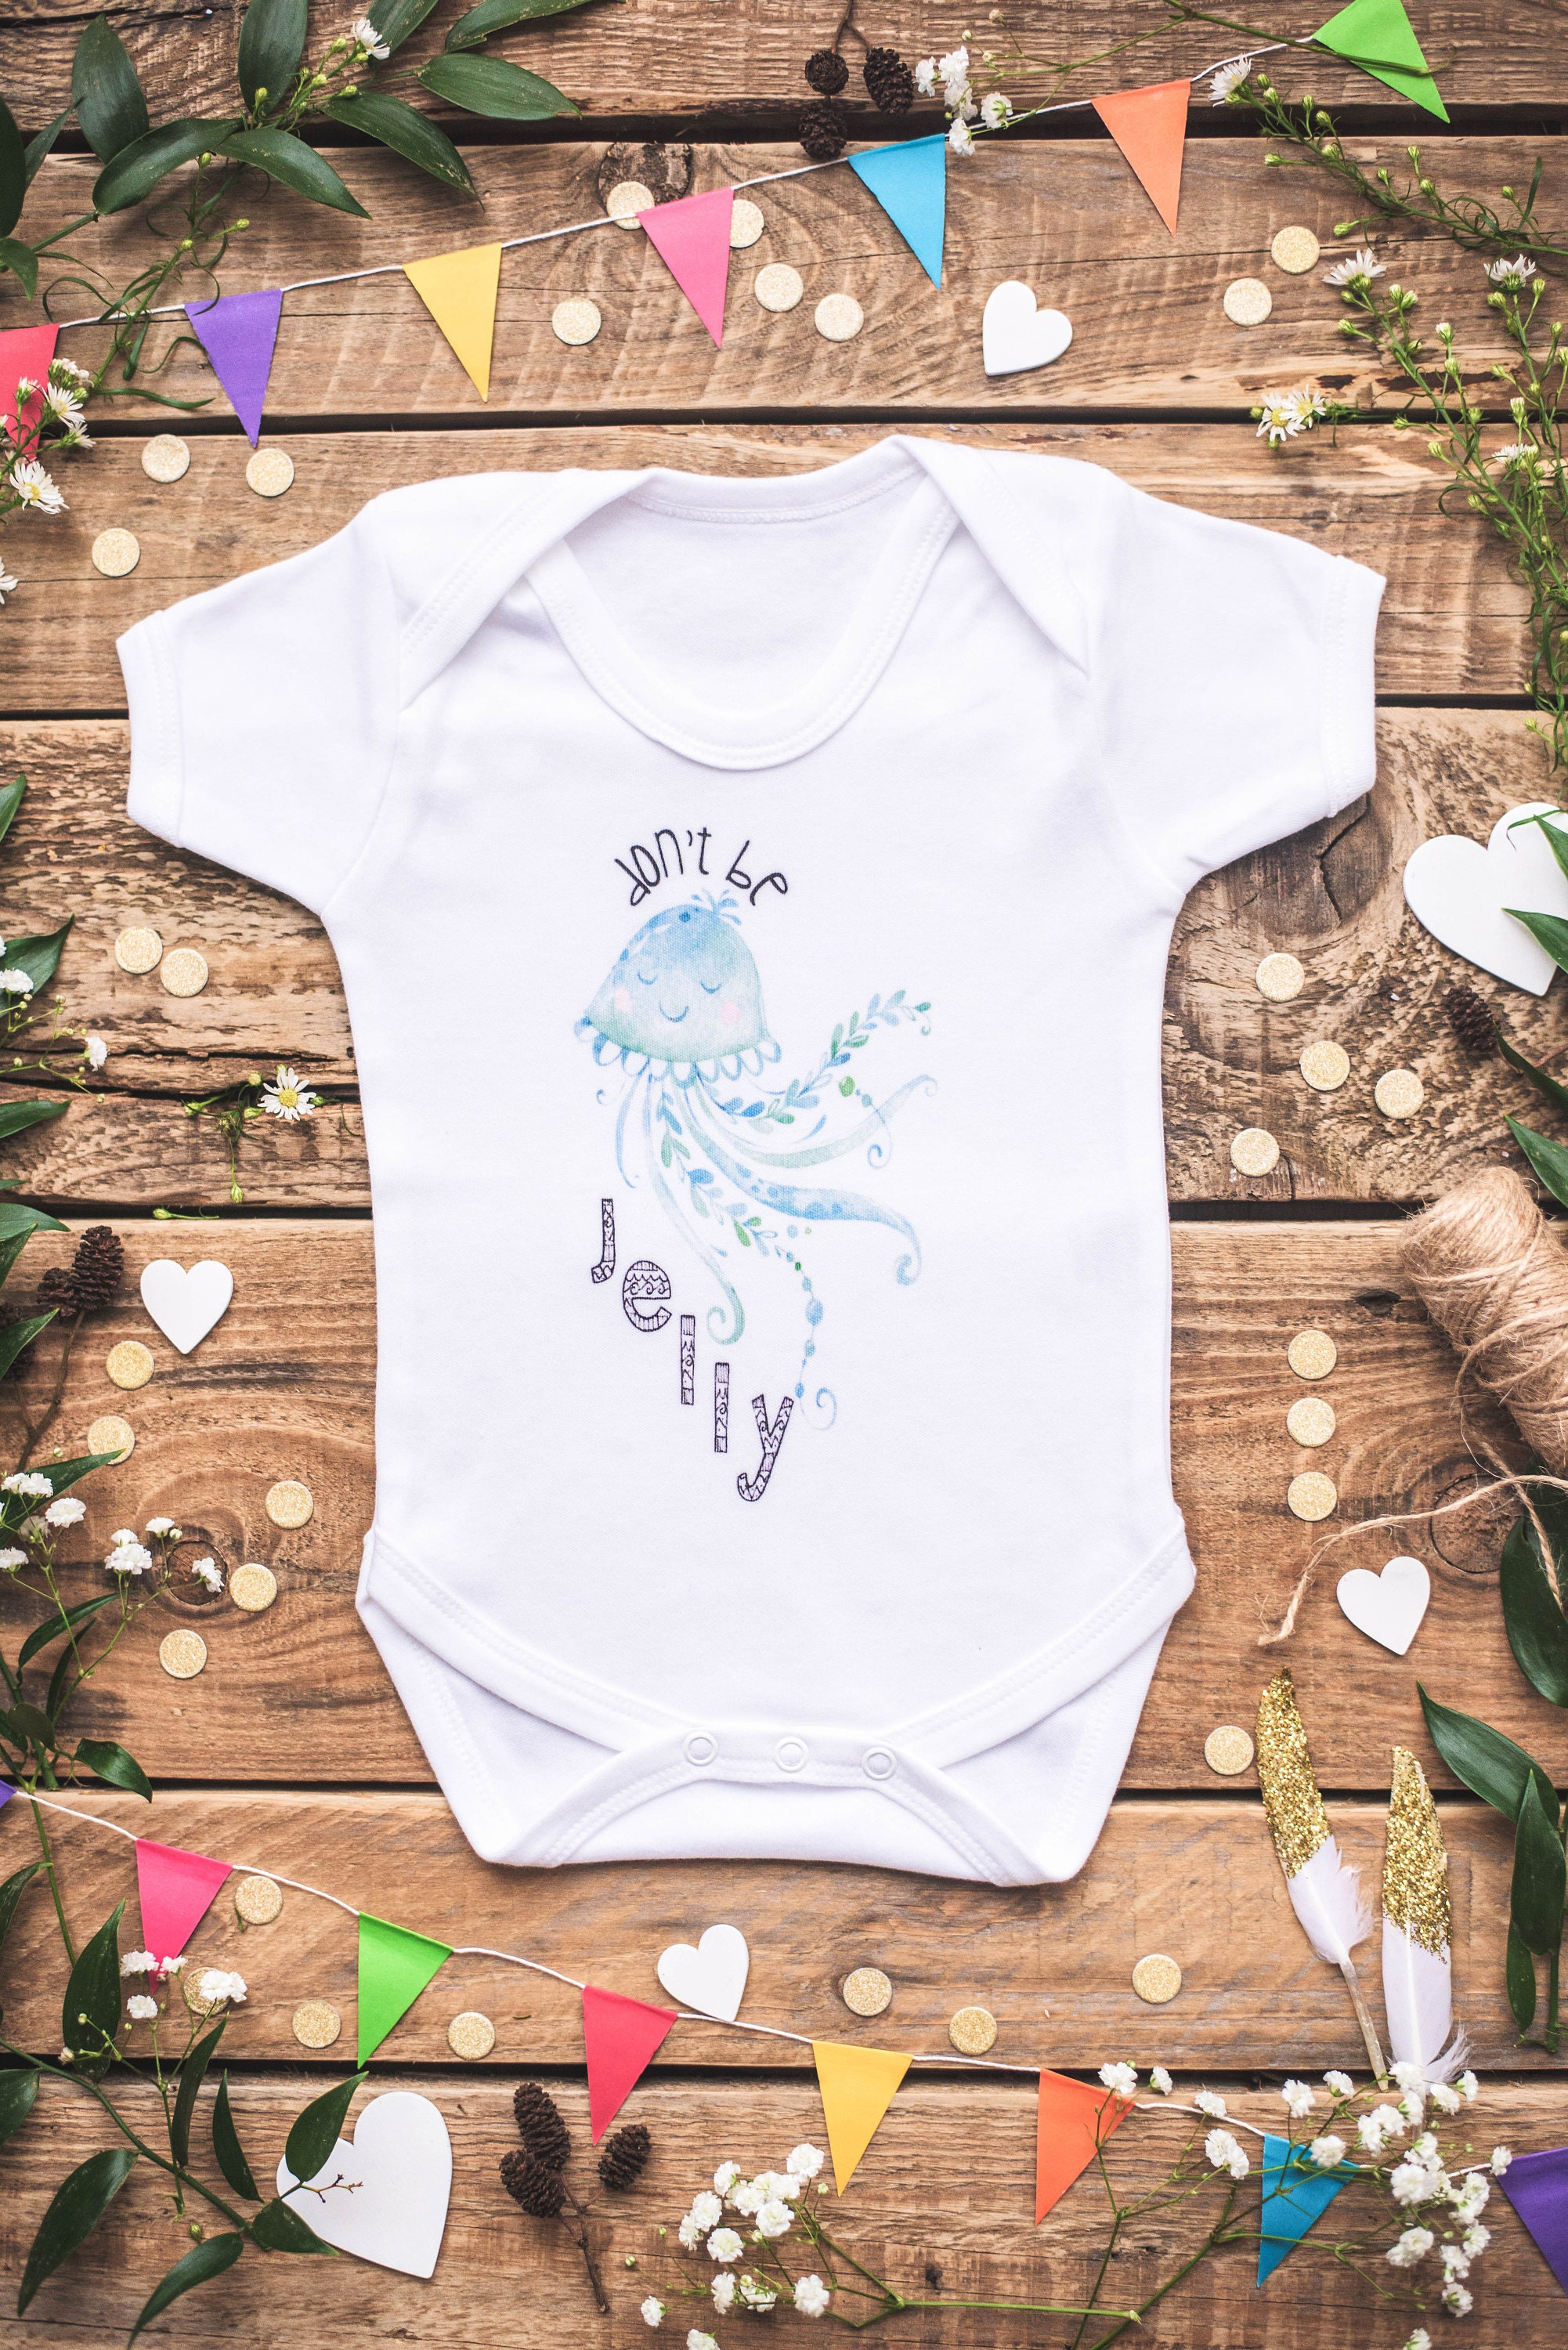 Dont Be Jelly Nautical Baby Clothes Beach Baby Clothing Jellyfish  Baby Clothes Summer Baby Shower Beach Baby Shirt Summer Baby Clothes